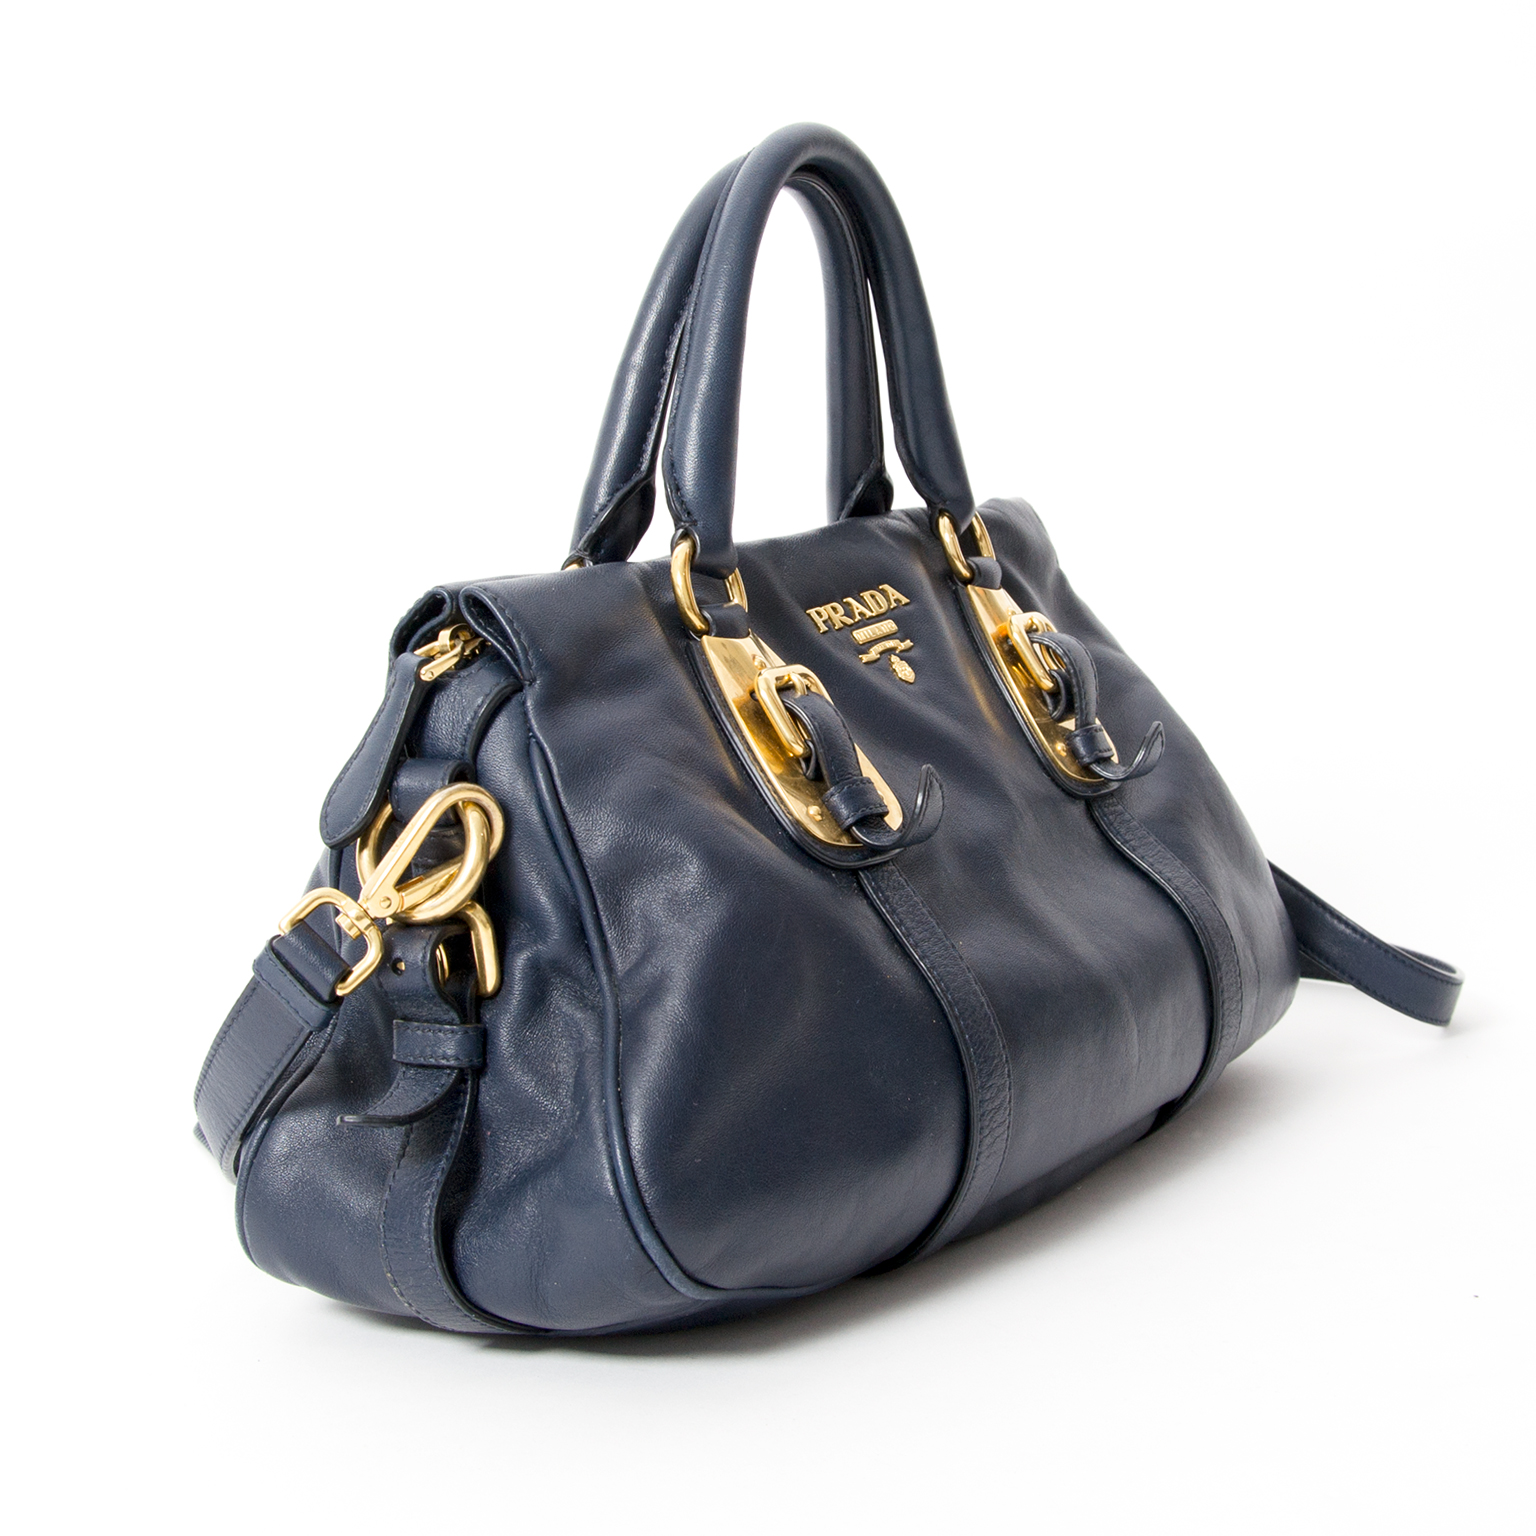 eda712796715 ... Prada Navy Leather Gold Buckle Hand/Crossbody Bag Prada bags are well-  known and